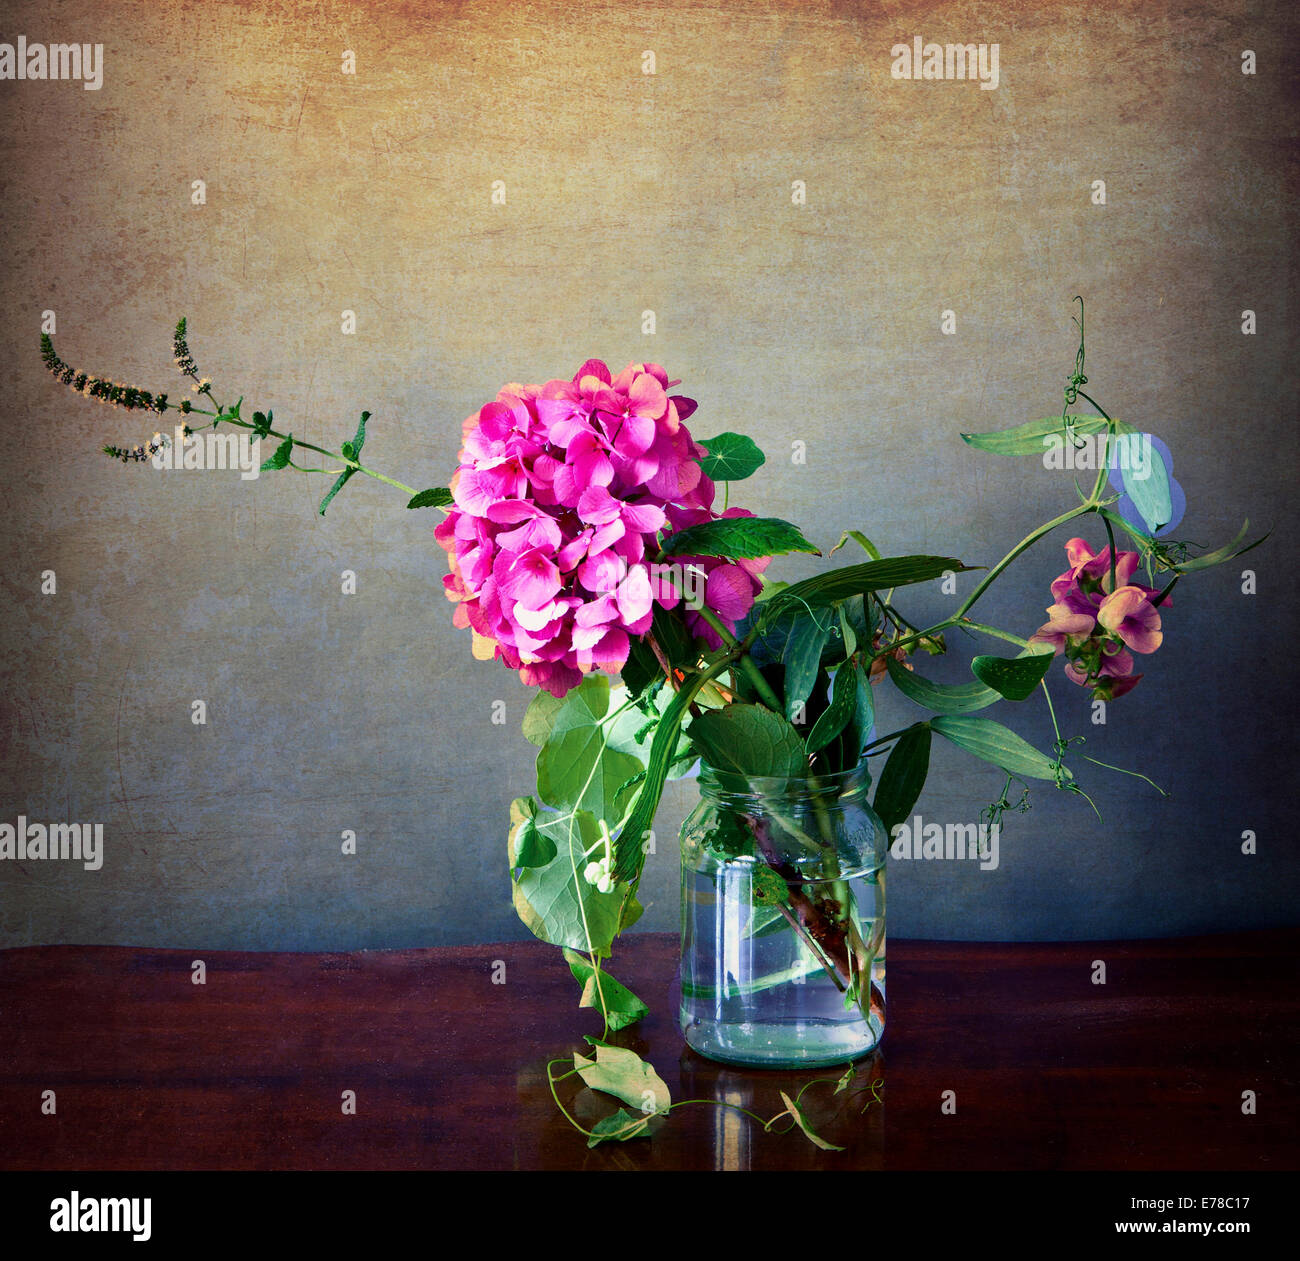 Pink hydrangea and field flowers in a glass with vintage texture and retro Instagram-like effects added - Stock Image